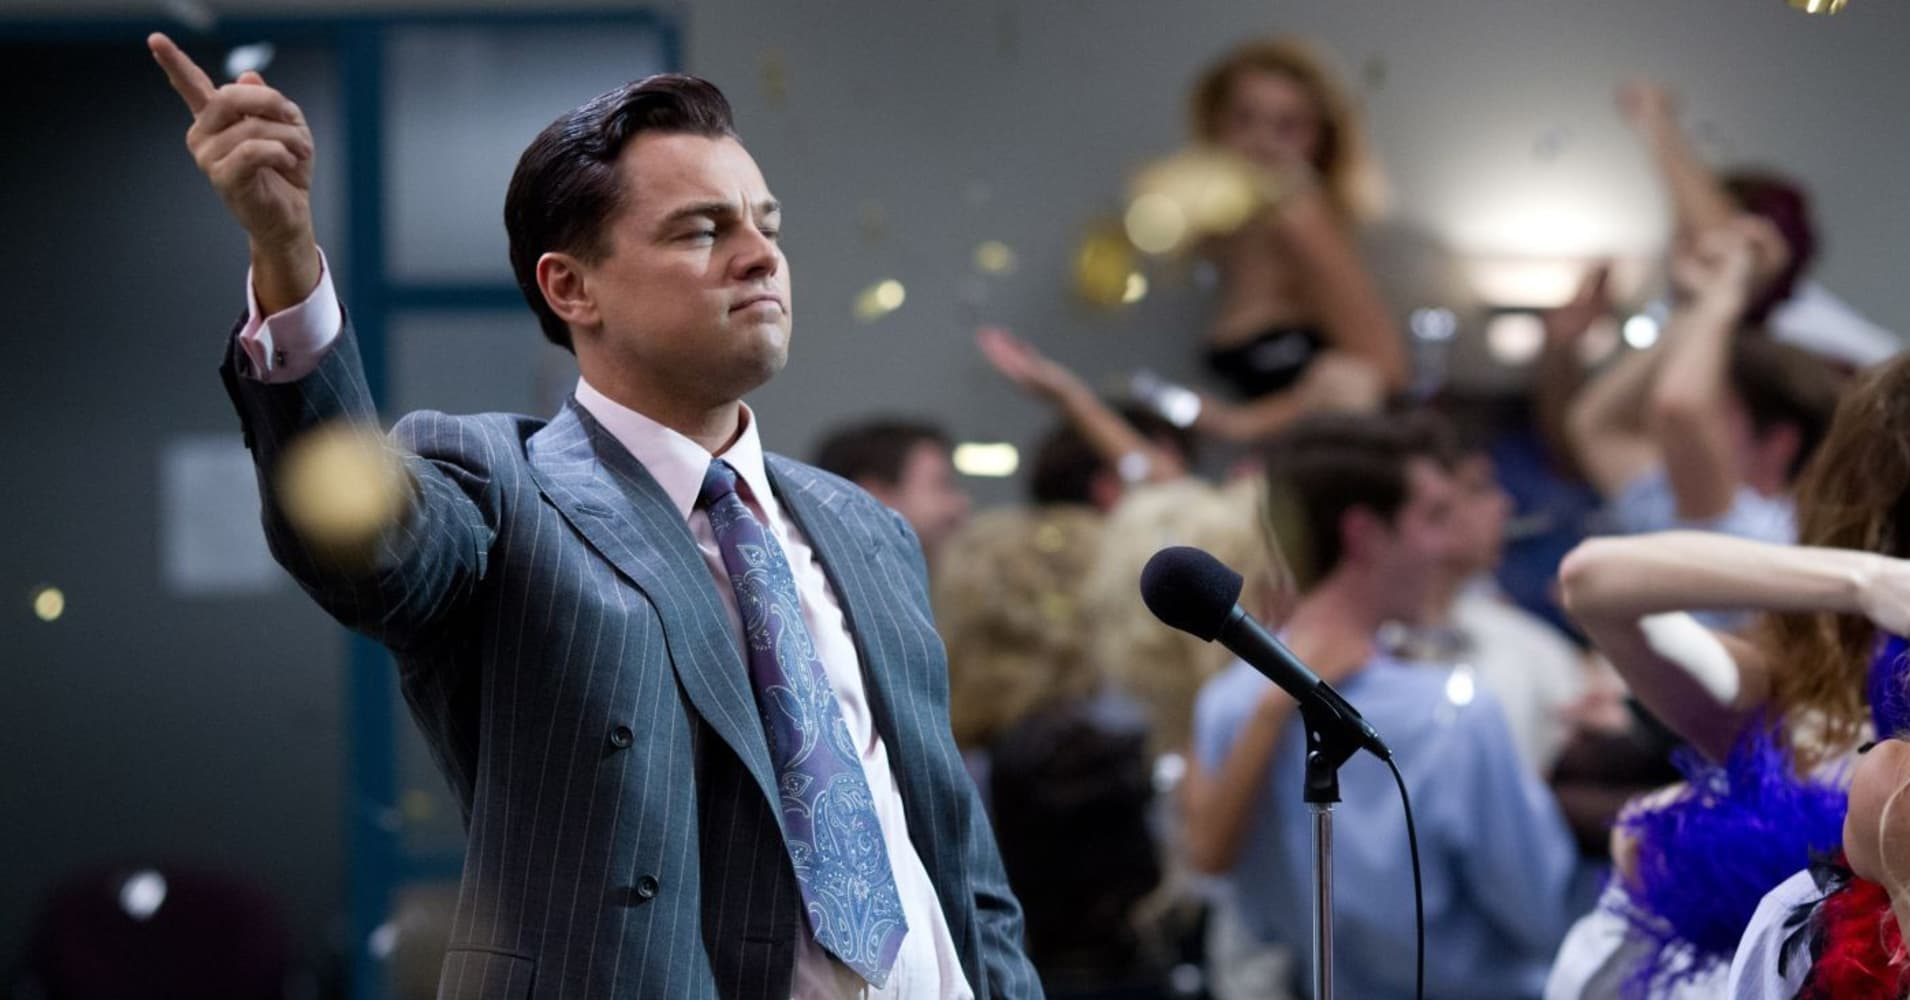 """A scene from """"The Wolf of Wall Street"""" starring Leonardo DiCaprio"""